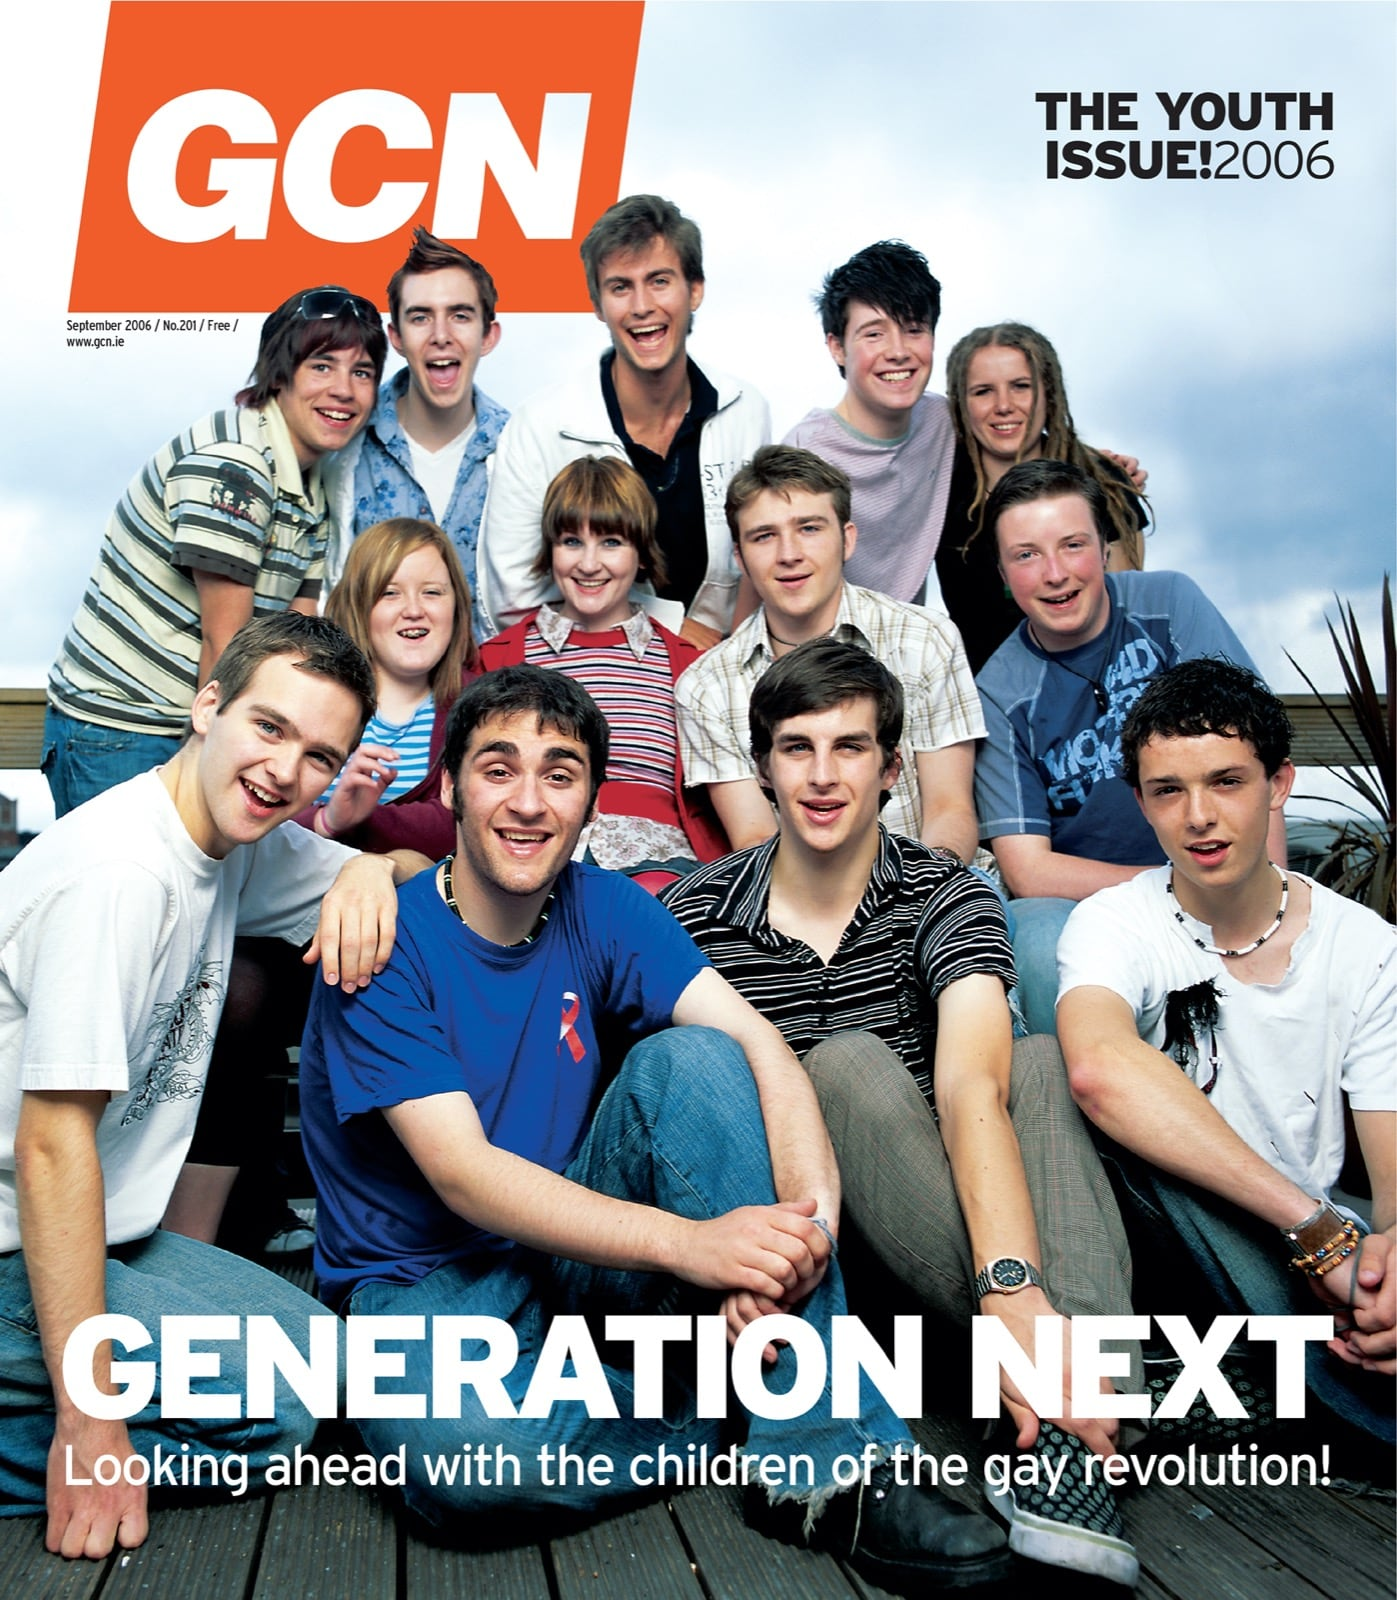 Some of GCN's covers from 2003 with about 10 LGBT youths on the cover.